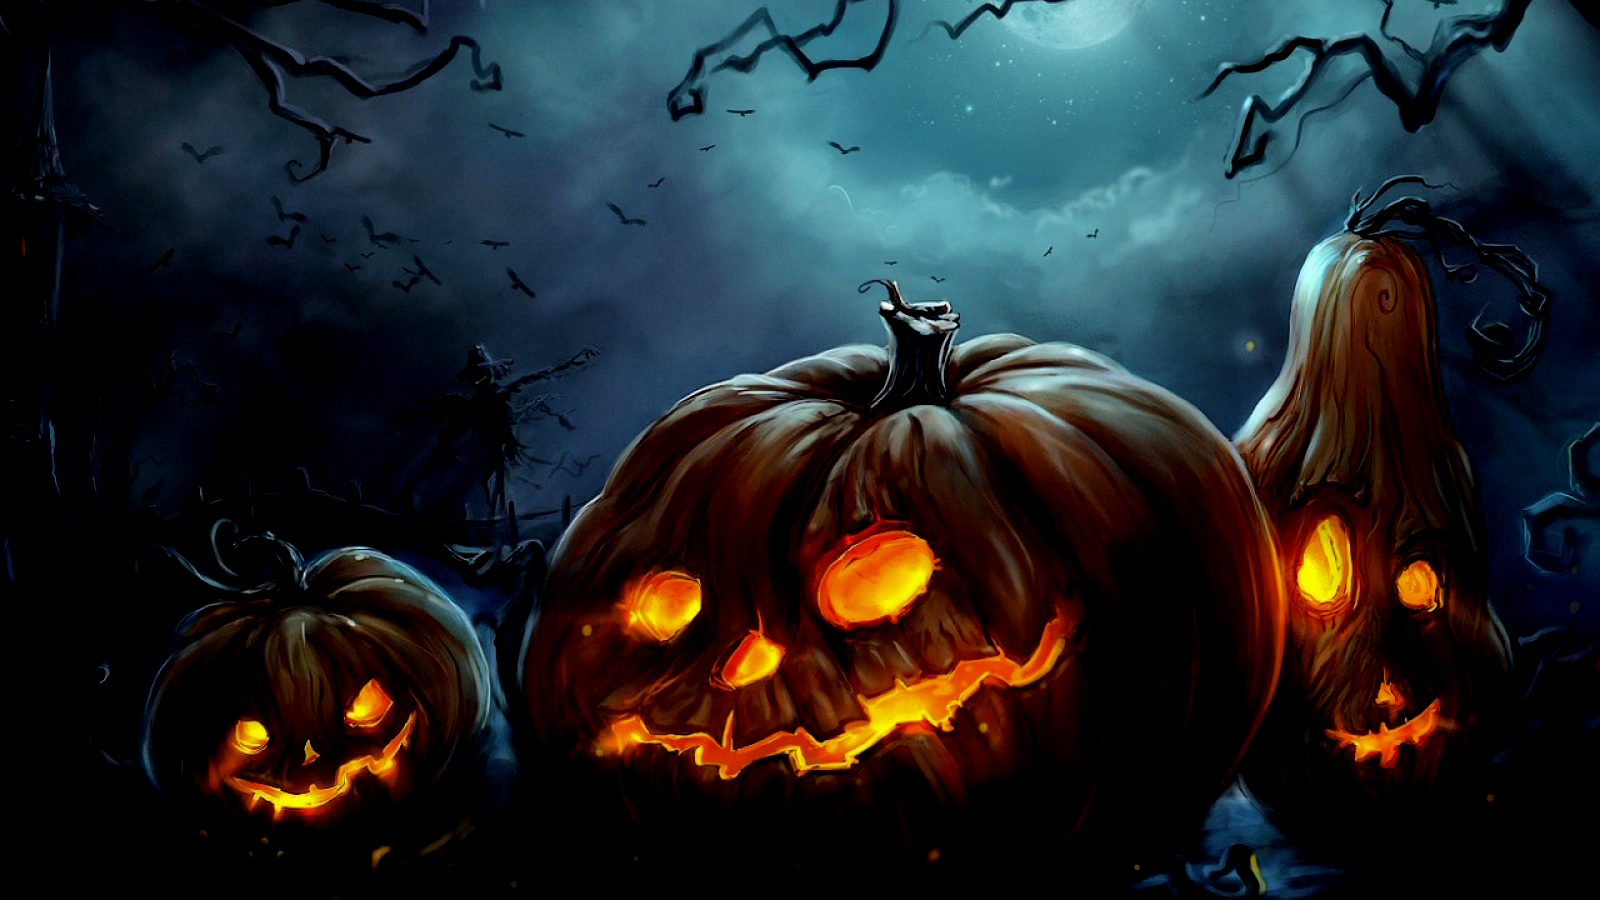 Halloween Computer Wallpapers Desktop Backgrounds 1600x900 ID 1600x900